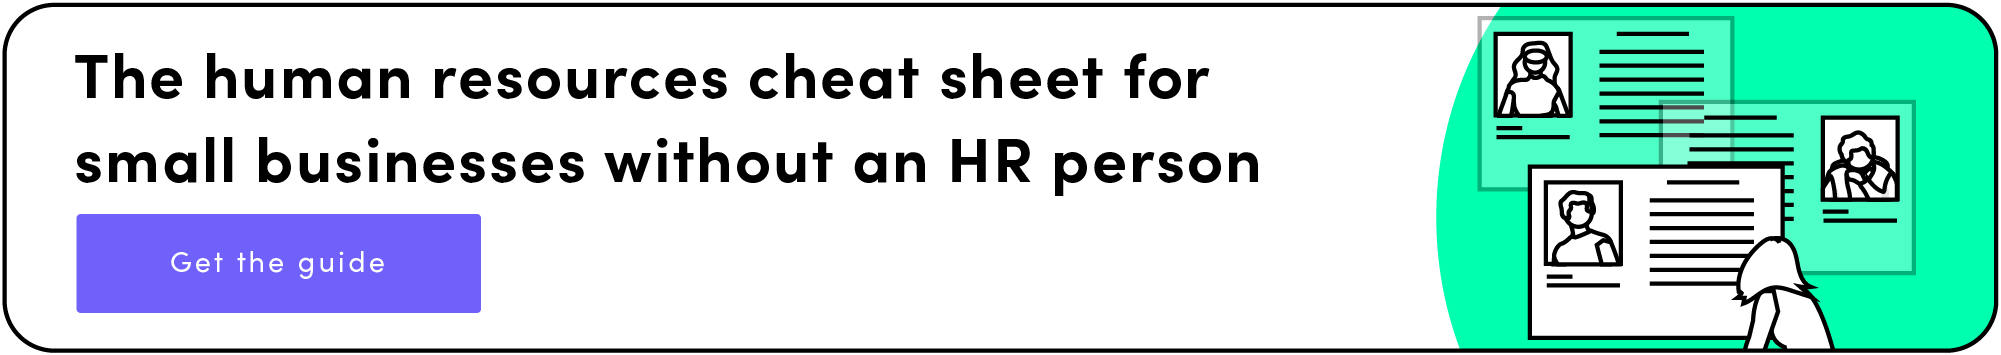 Download the human resources cheat sheet here